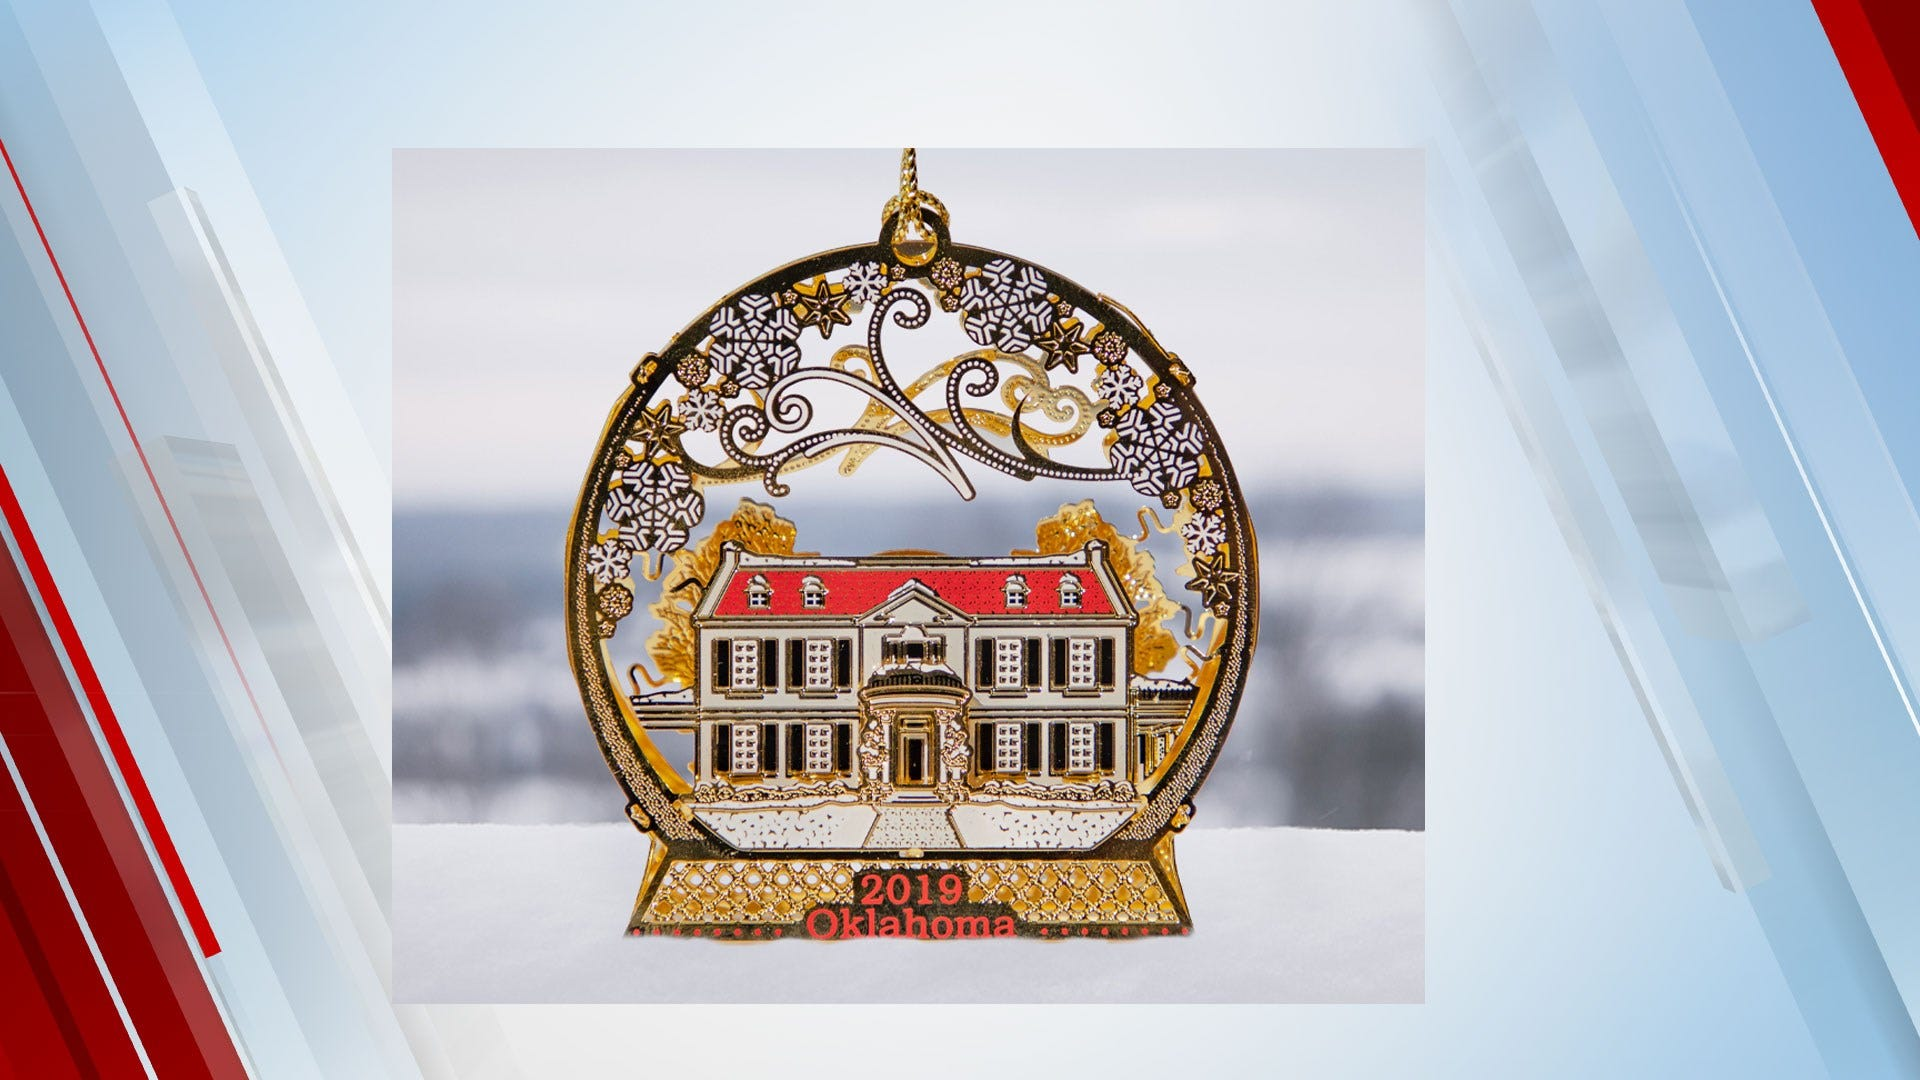 2019 Oklahoma Holiday Ornament Released